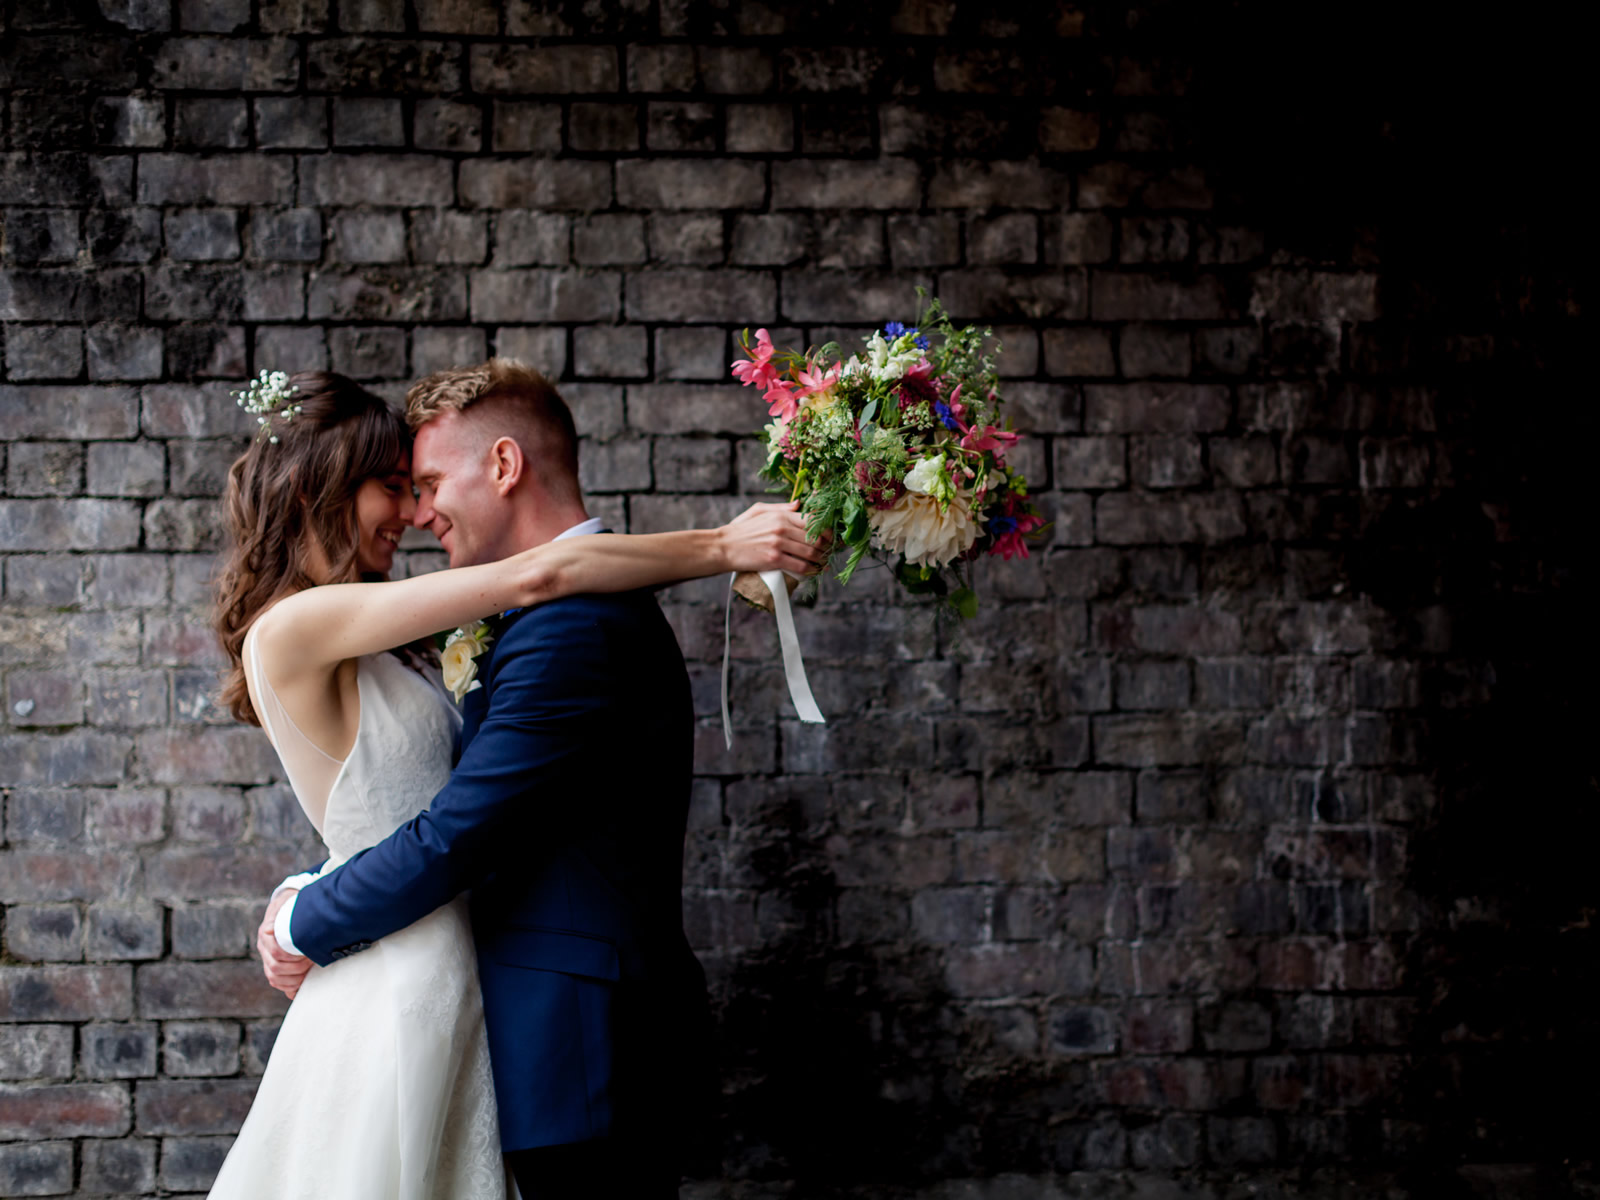 Alternative-wedding-photographer-Camden-Town-Hall-869_40x30cm